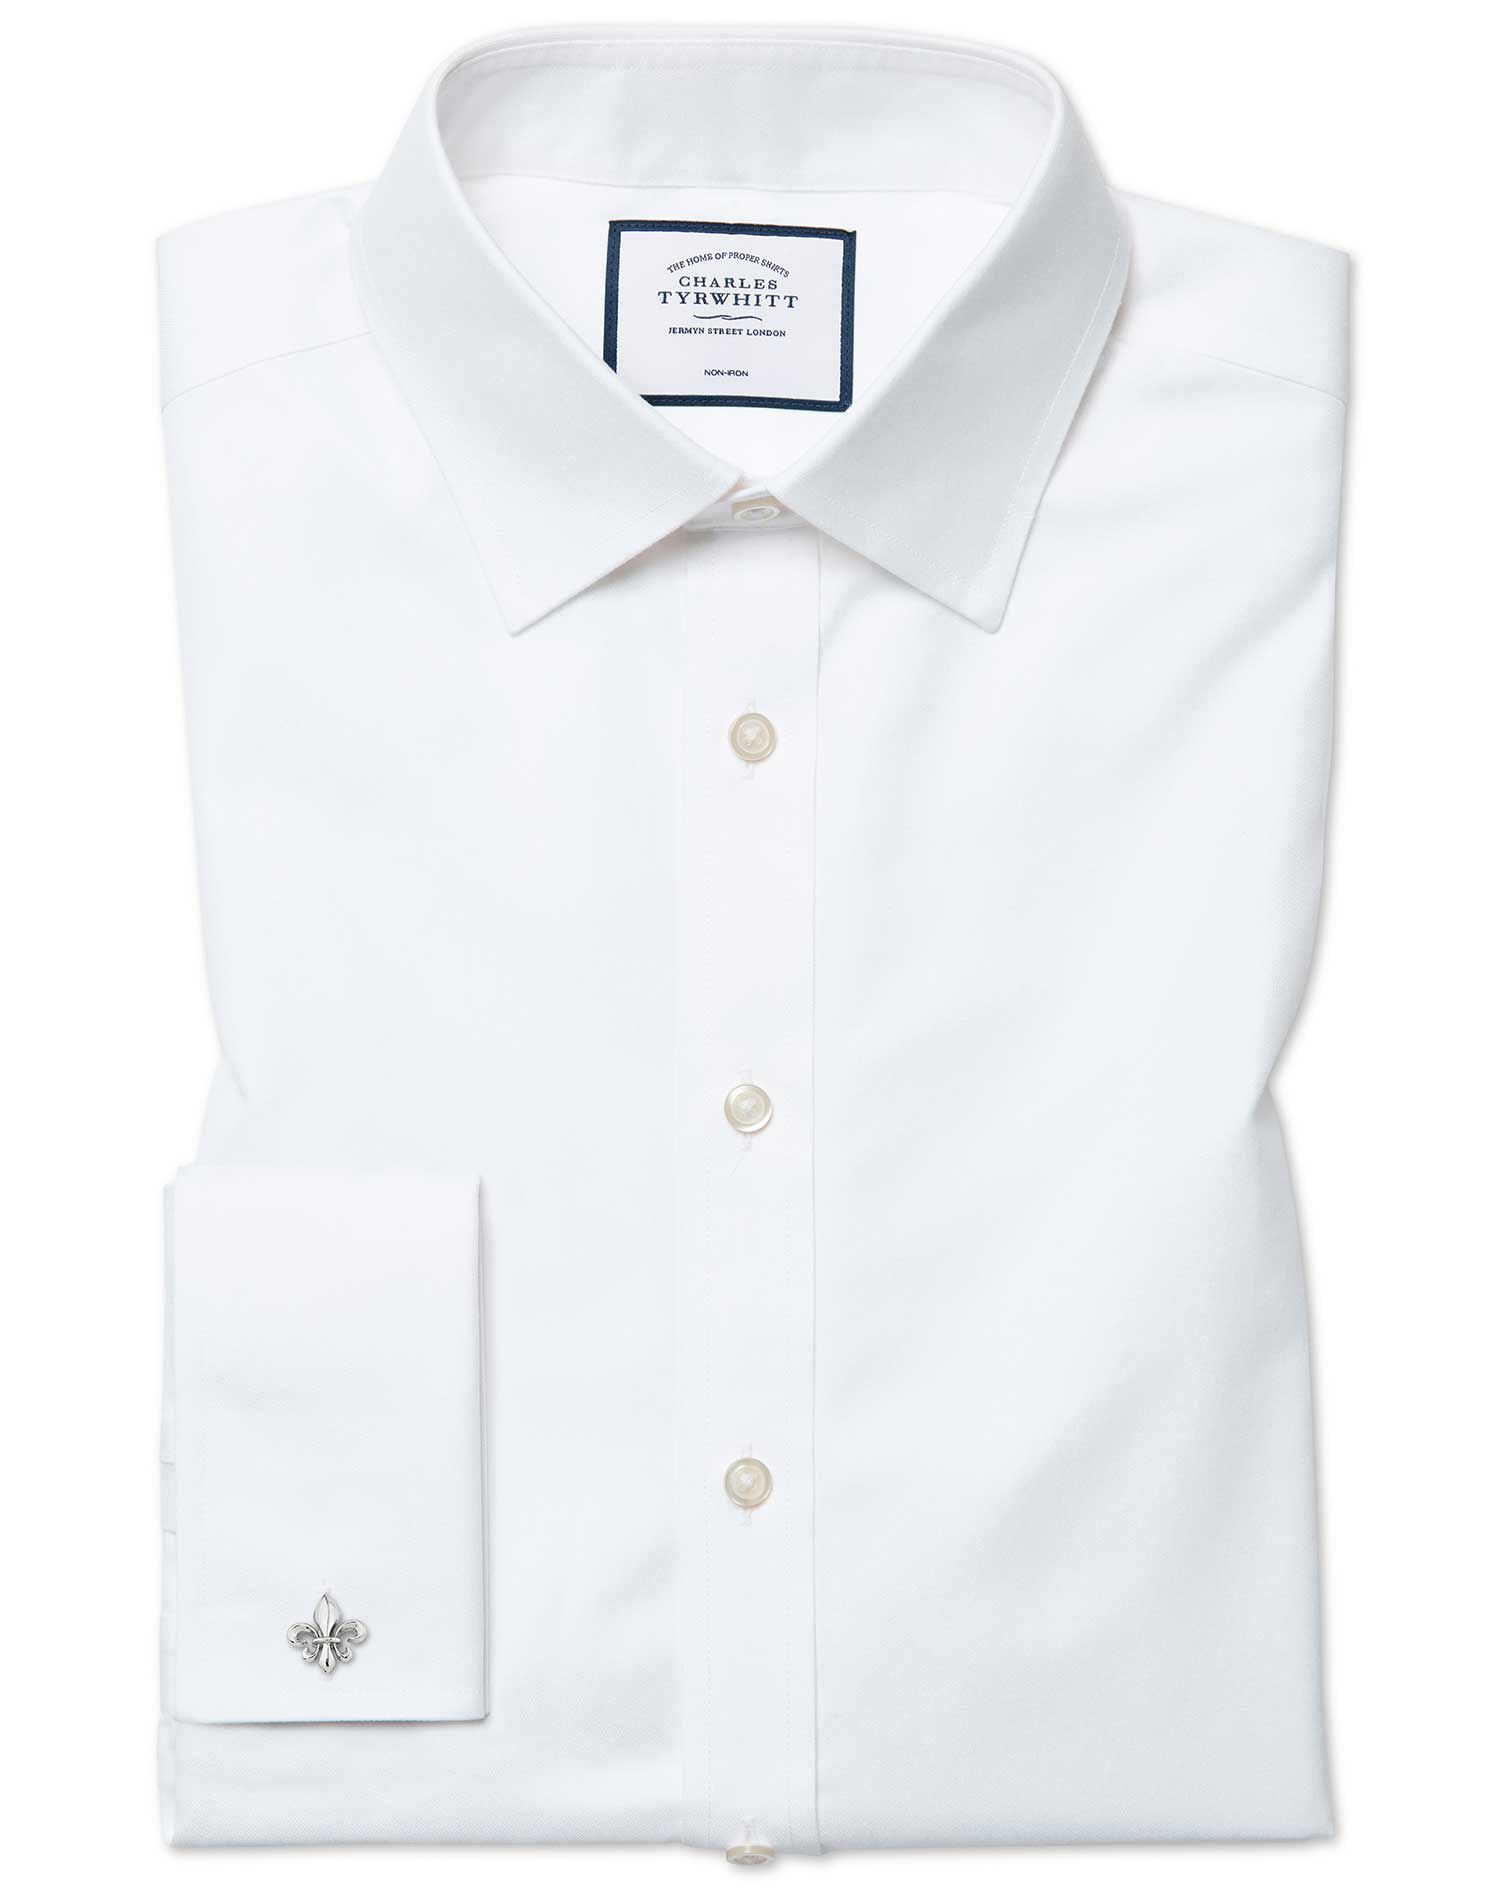 Extra Slim Fit Cutaway Collar Non-Iron Twill White Cotton Formal Shirt Double Cuff Size 14.5/33 by C